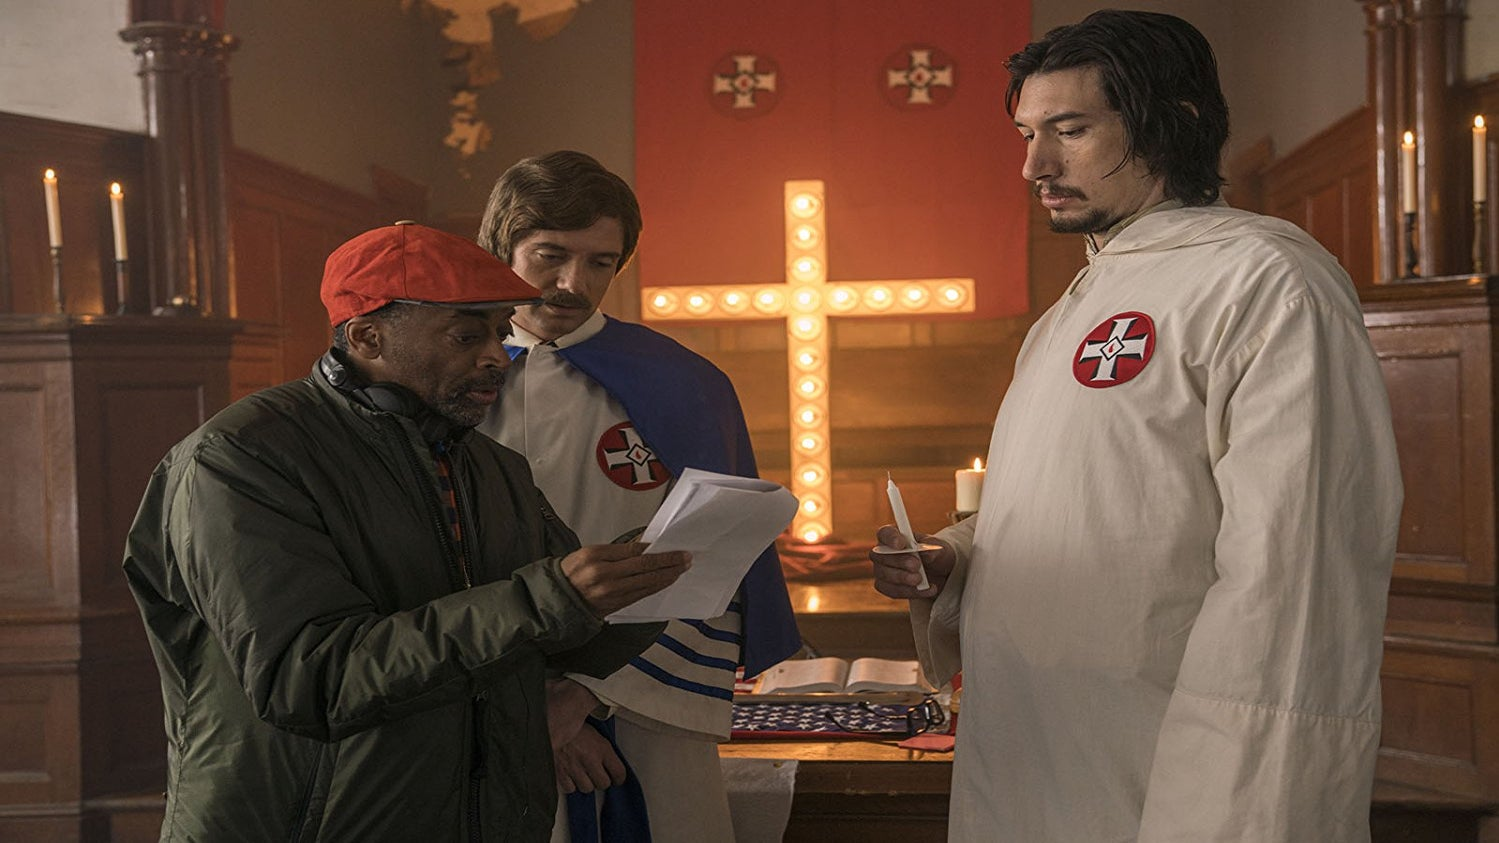 KKK Grand Wizard David Duke Is 'Concerned' About How He'll Be Portrayed In Spike Lee's 'BlacKkKlansman'